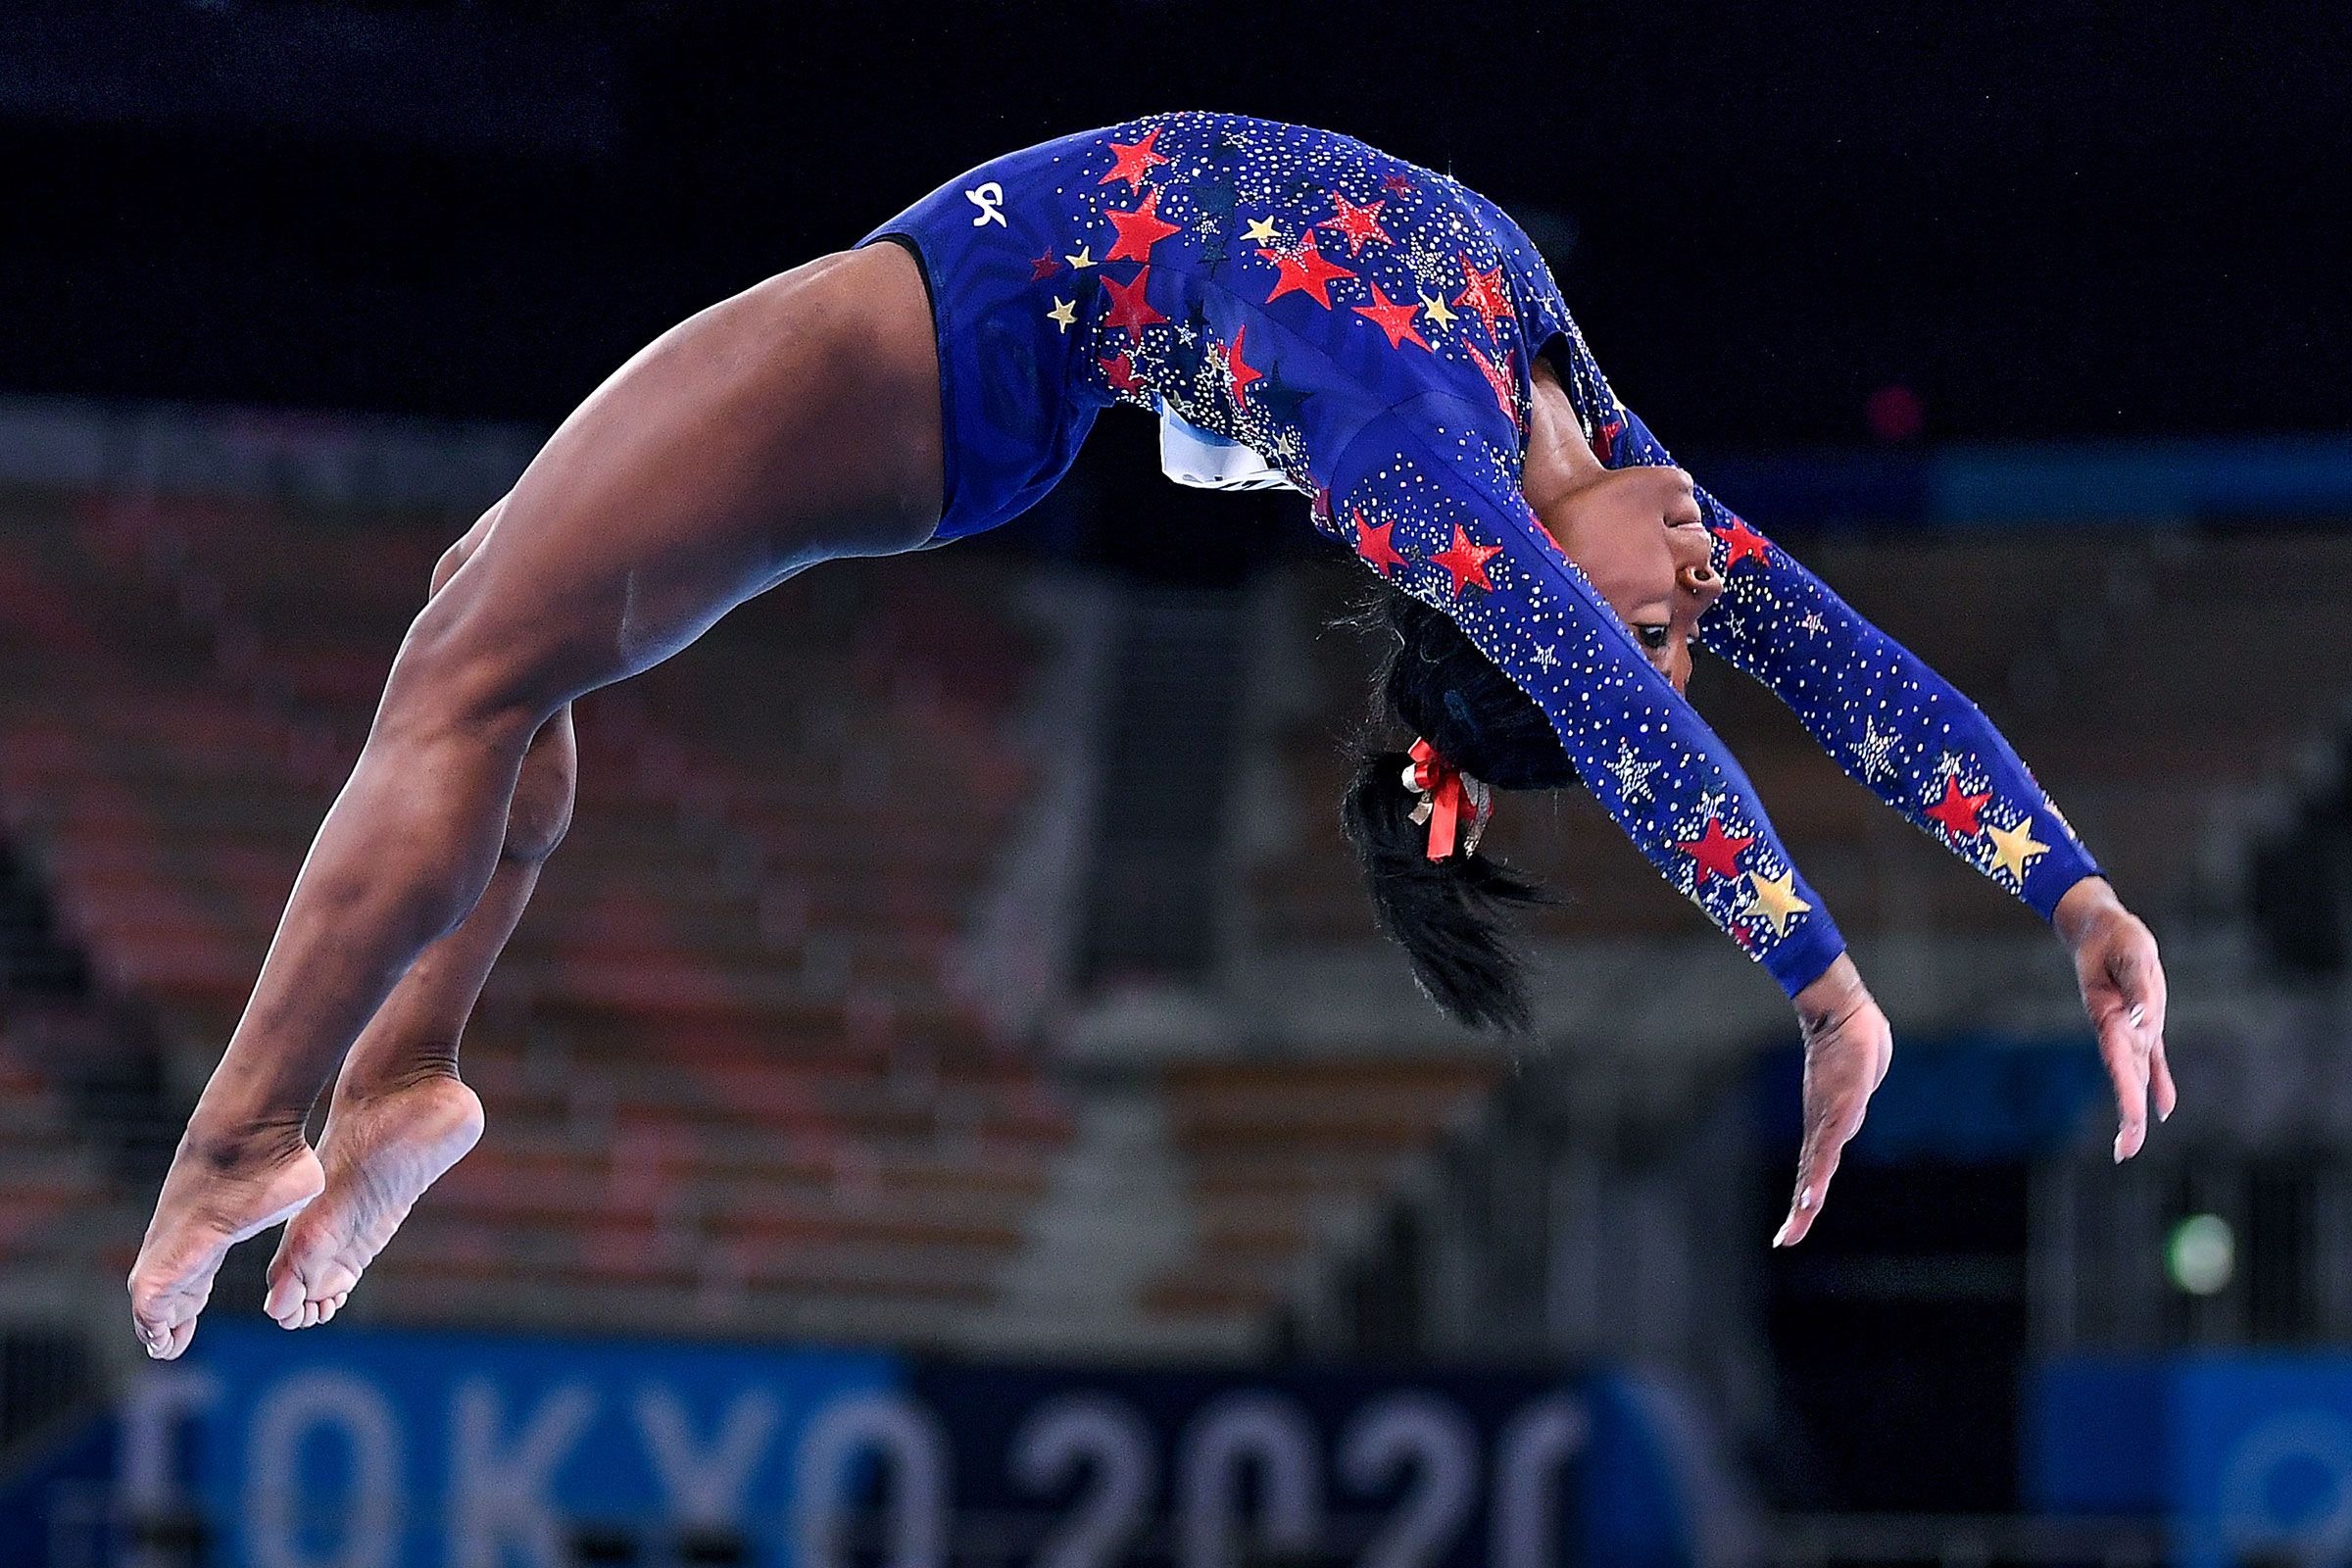 Simone Biles competes on the beam in the women's team qualifying on July 25.